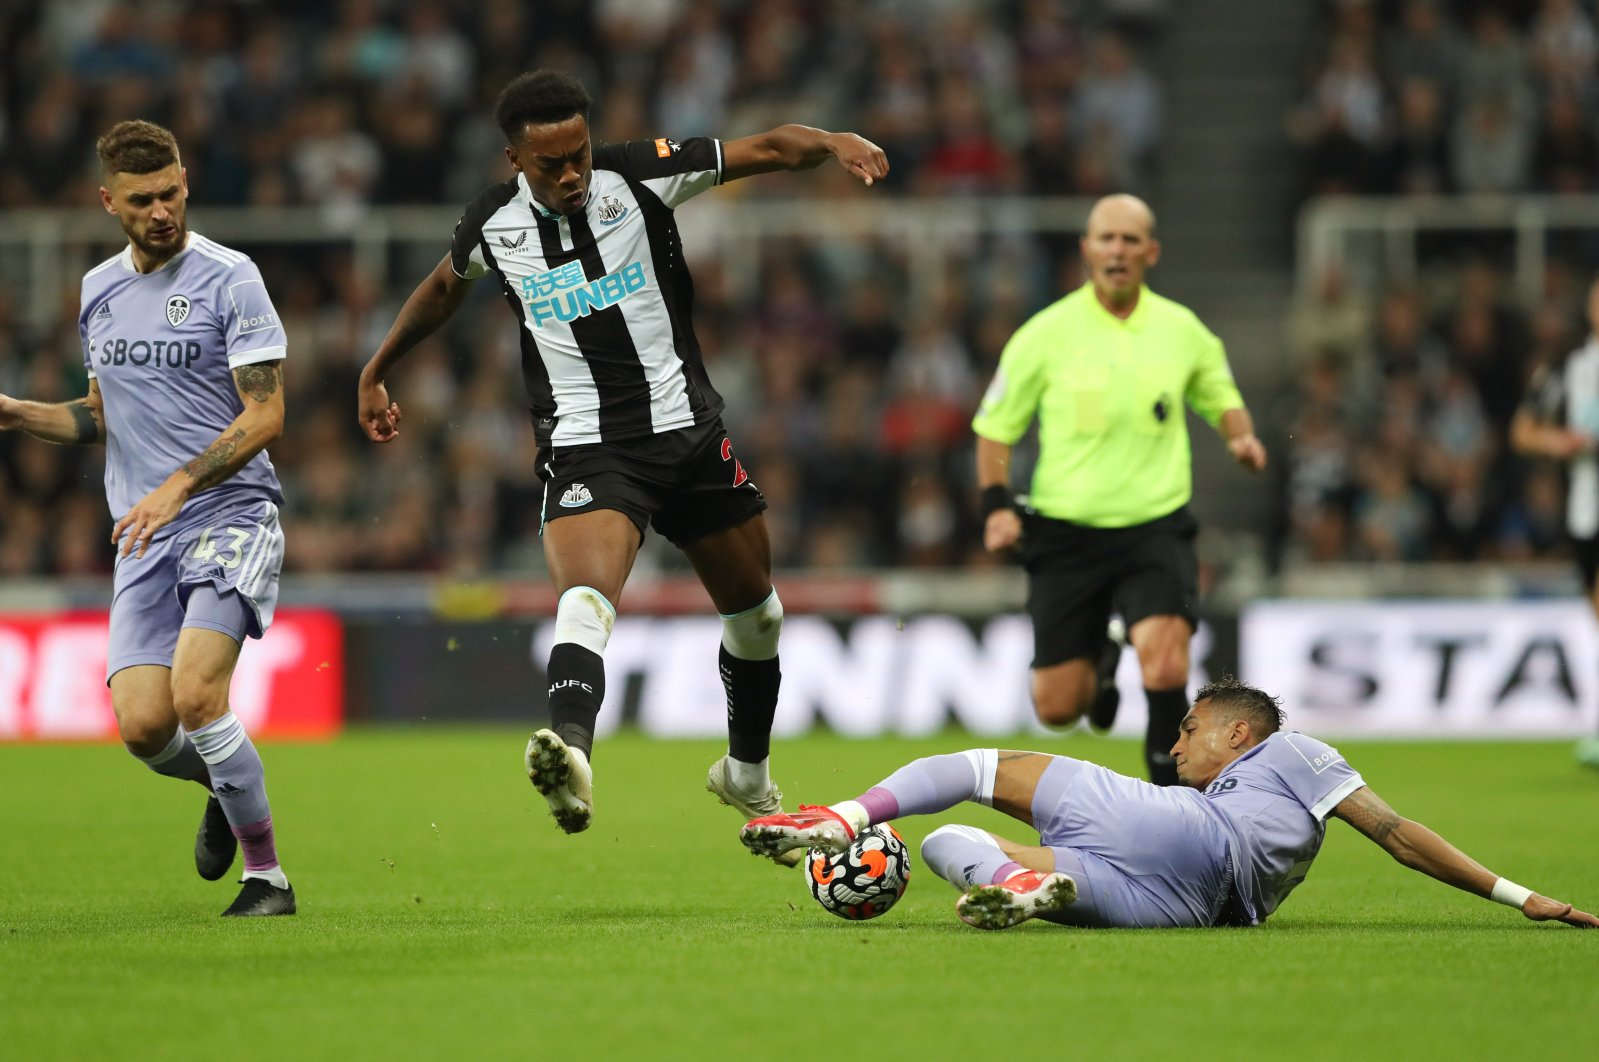 Newcastle United's Joe Willock in action with Leeds United's Raphinha as the clubs battled to a 1-1 draw Friday night at St James' Park, Newcastle, U.K., Sept. 17, 2021. (REUTERS Photo)